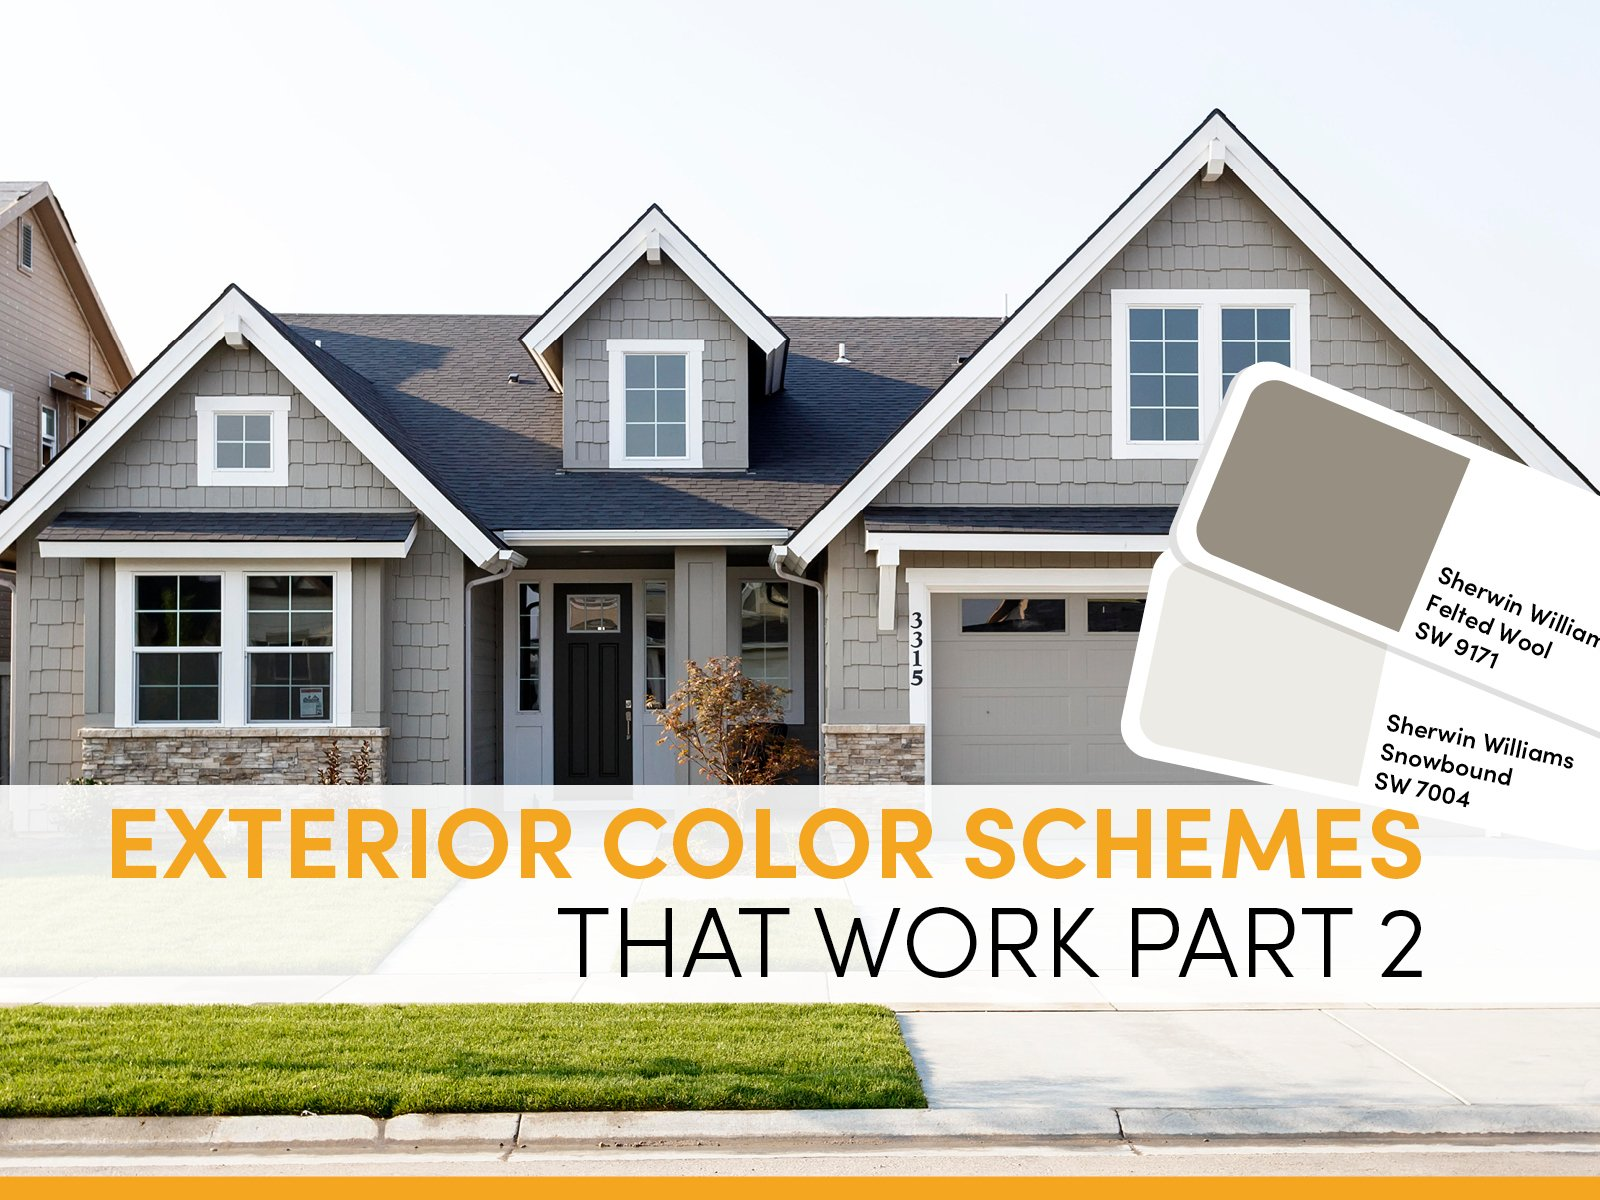 Blog Exterior Color Schemes That Work Part 2-1